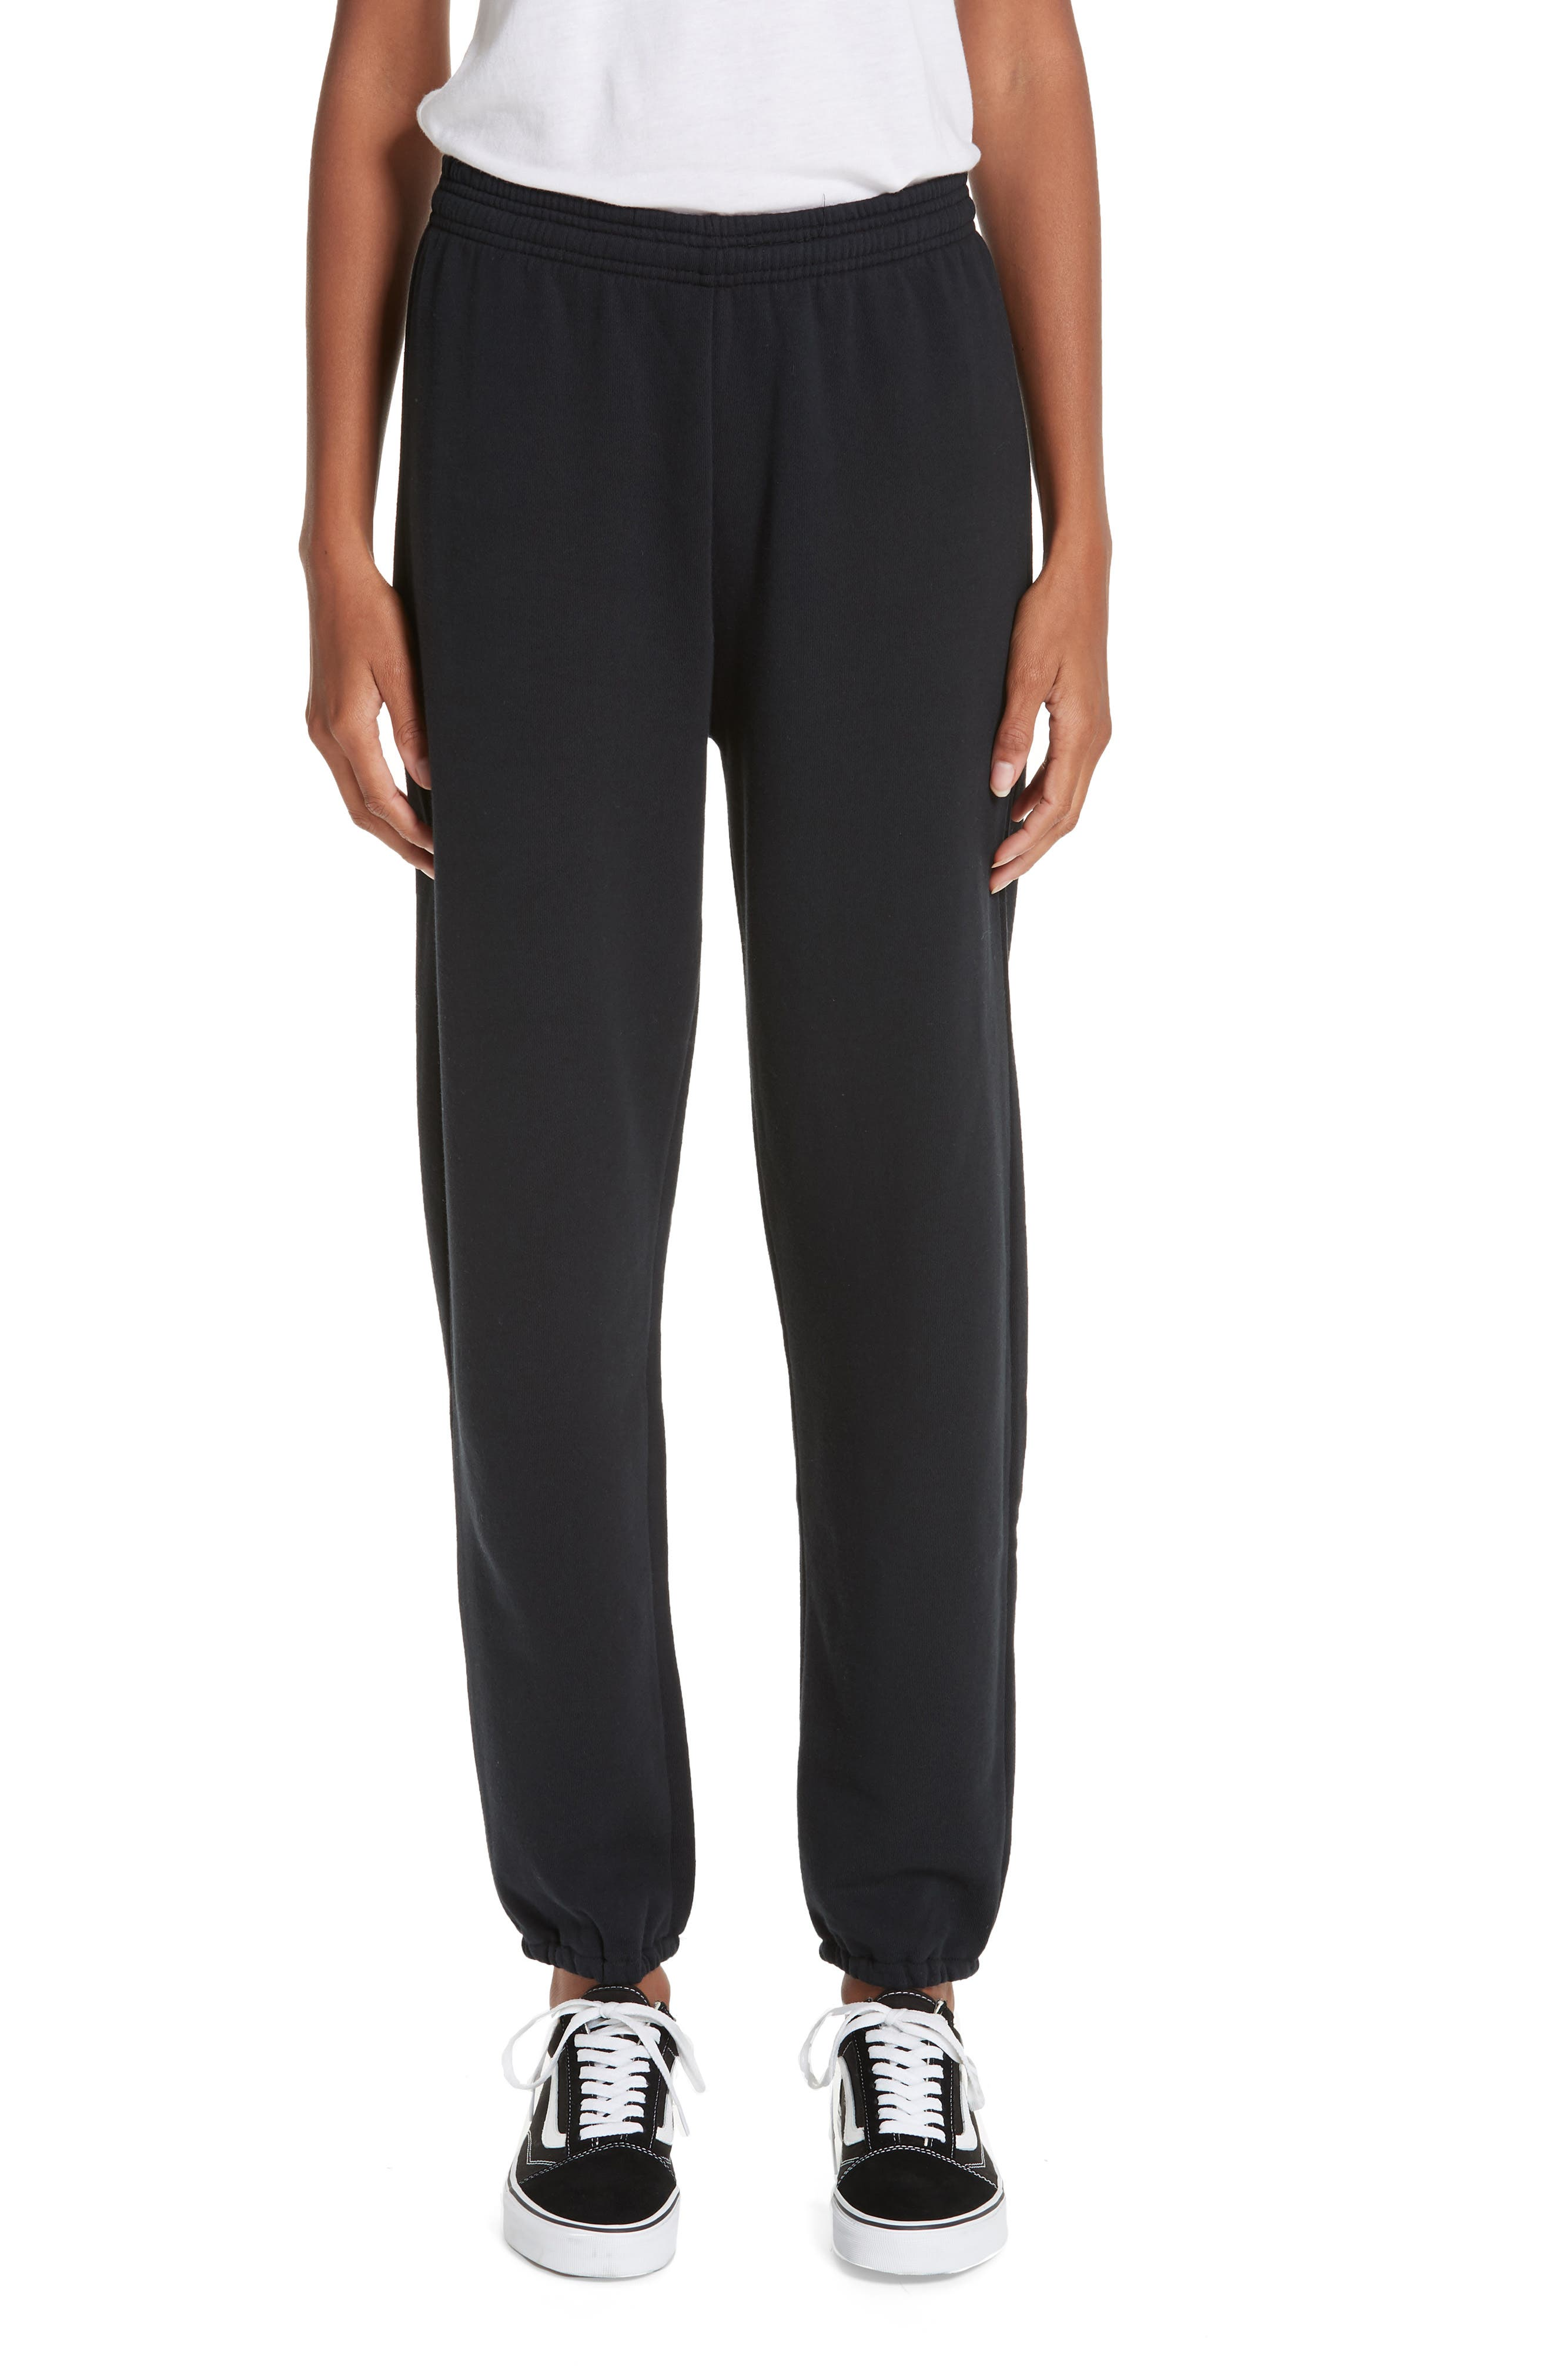 Don't Know Don't Care Jogger Pants,                         Main,                         color, 001